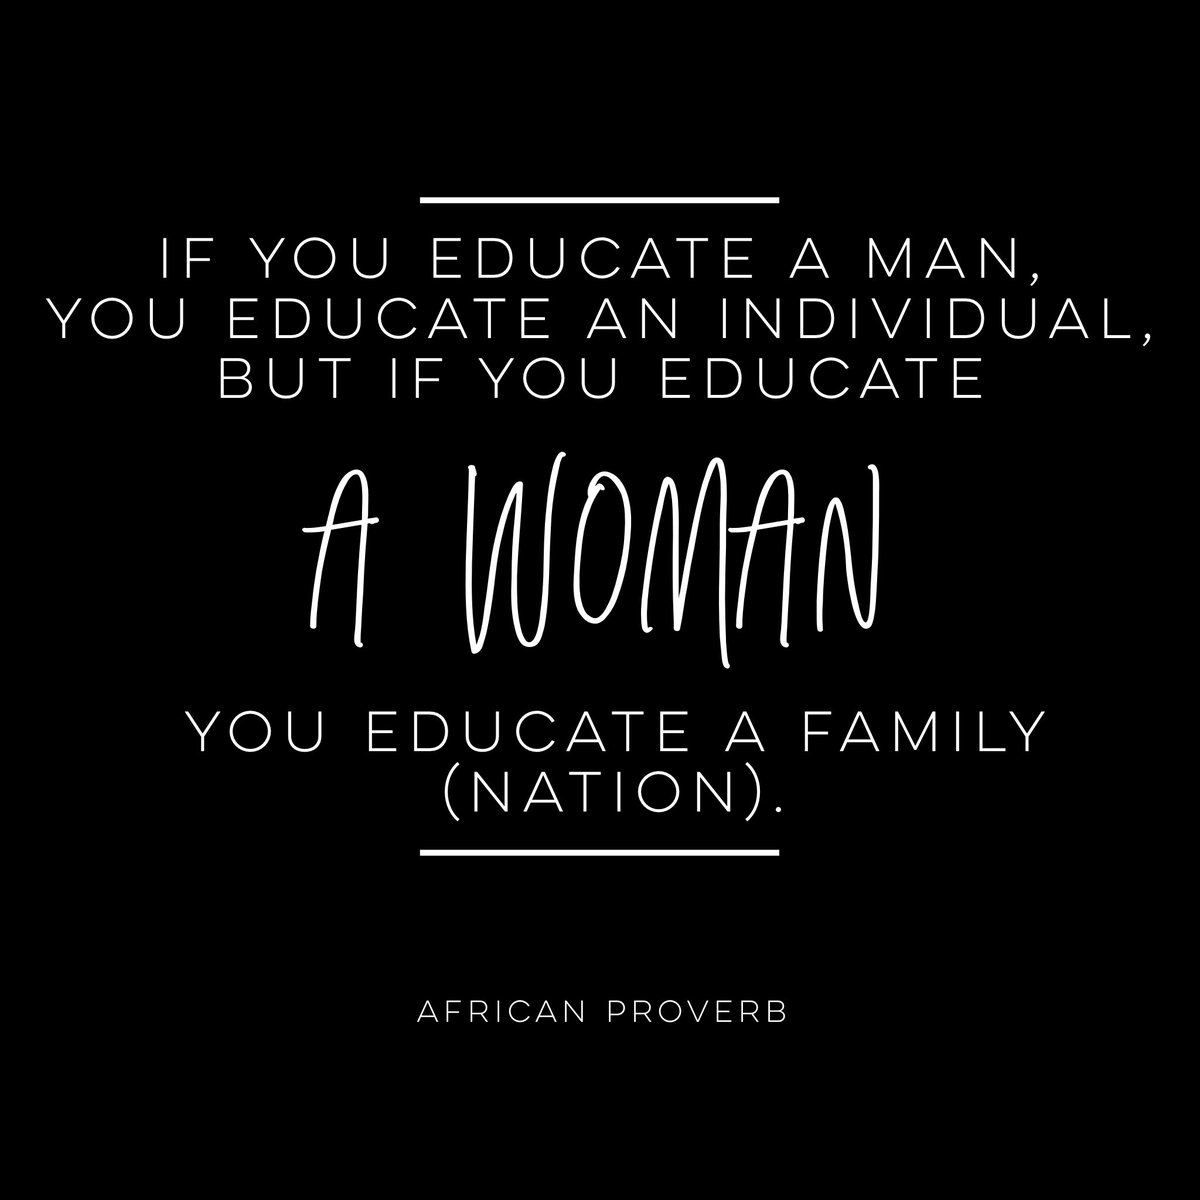 Education is a gateway to broadening perceptions, fighting stereotypes, and creating parity in this world. Celebrating all of the women who have made an indelible impact on my life on #InternationalWomensDay and everyday. #EachforEqual #IWD2020 https://t.co/PFDwX5Ippl